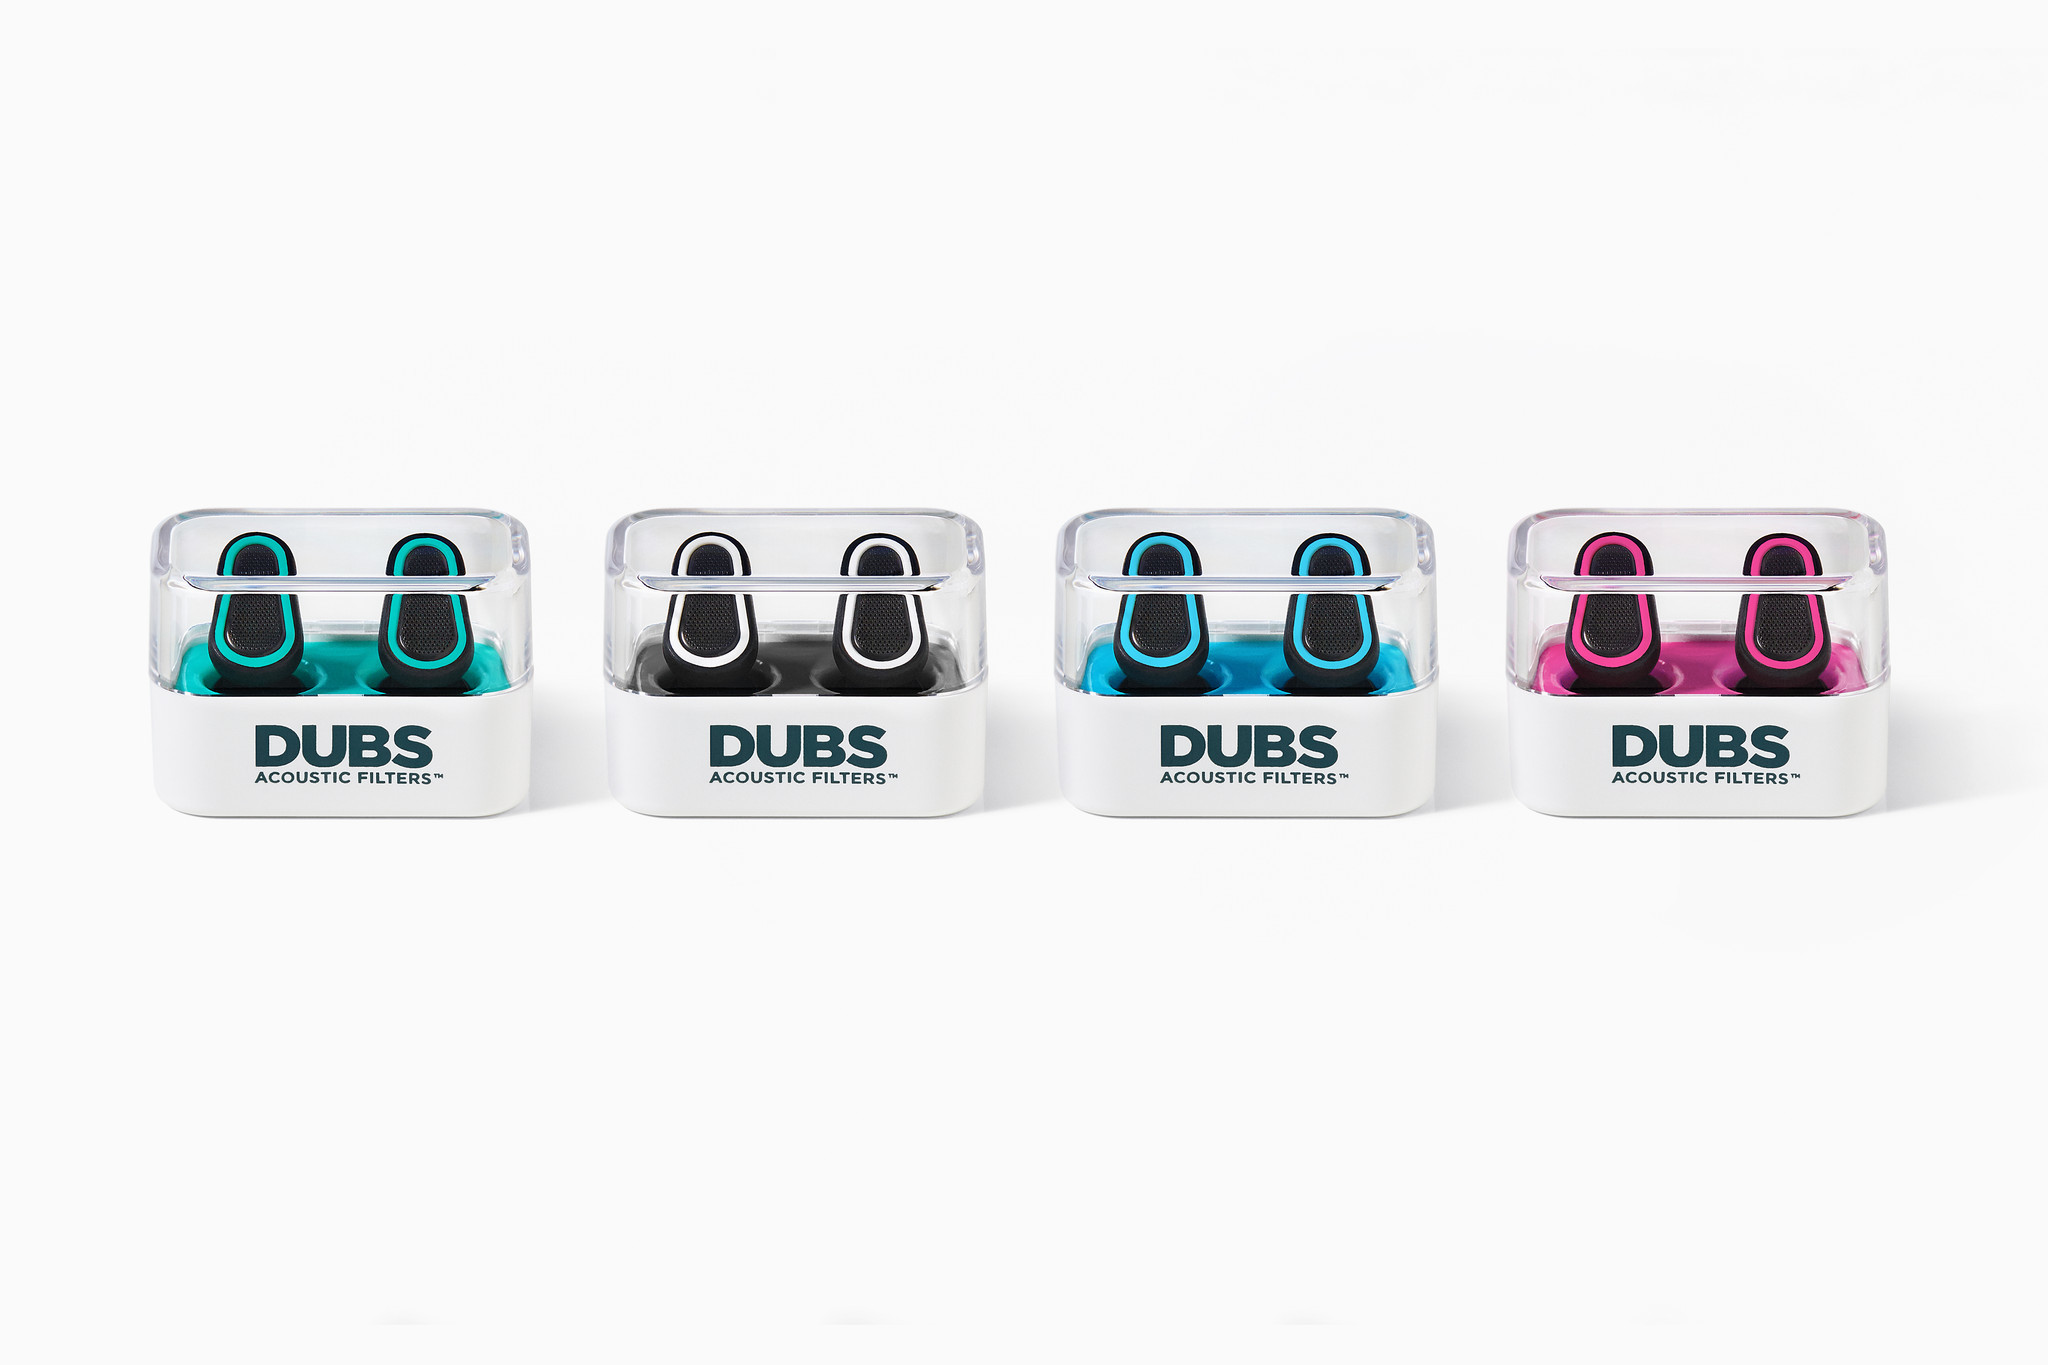 Dubs aims to make earplugs a 'fashion staple' by focusing on design